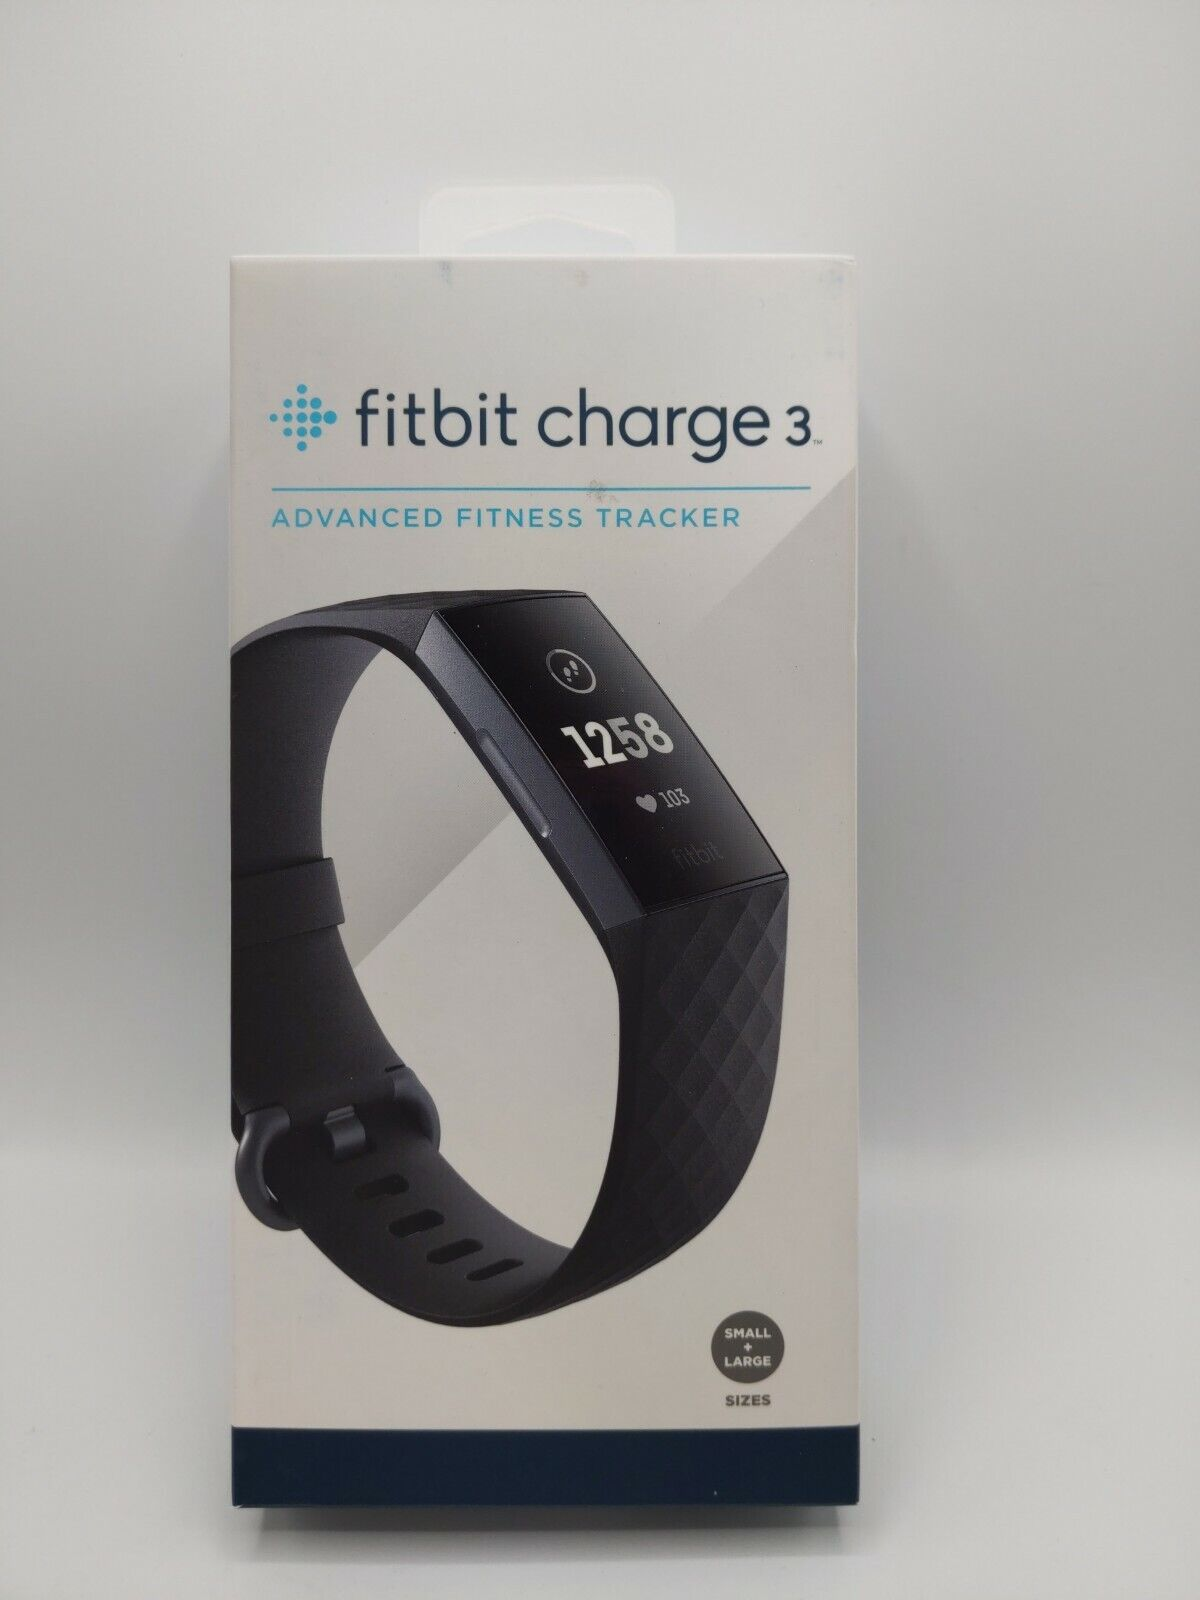 Fitbit Charge 3 Fitness Activity Tracker - Graphite/Black Fitbit Band